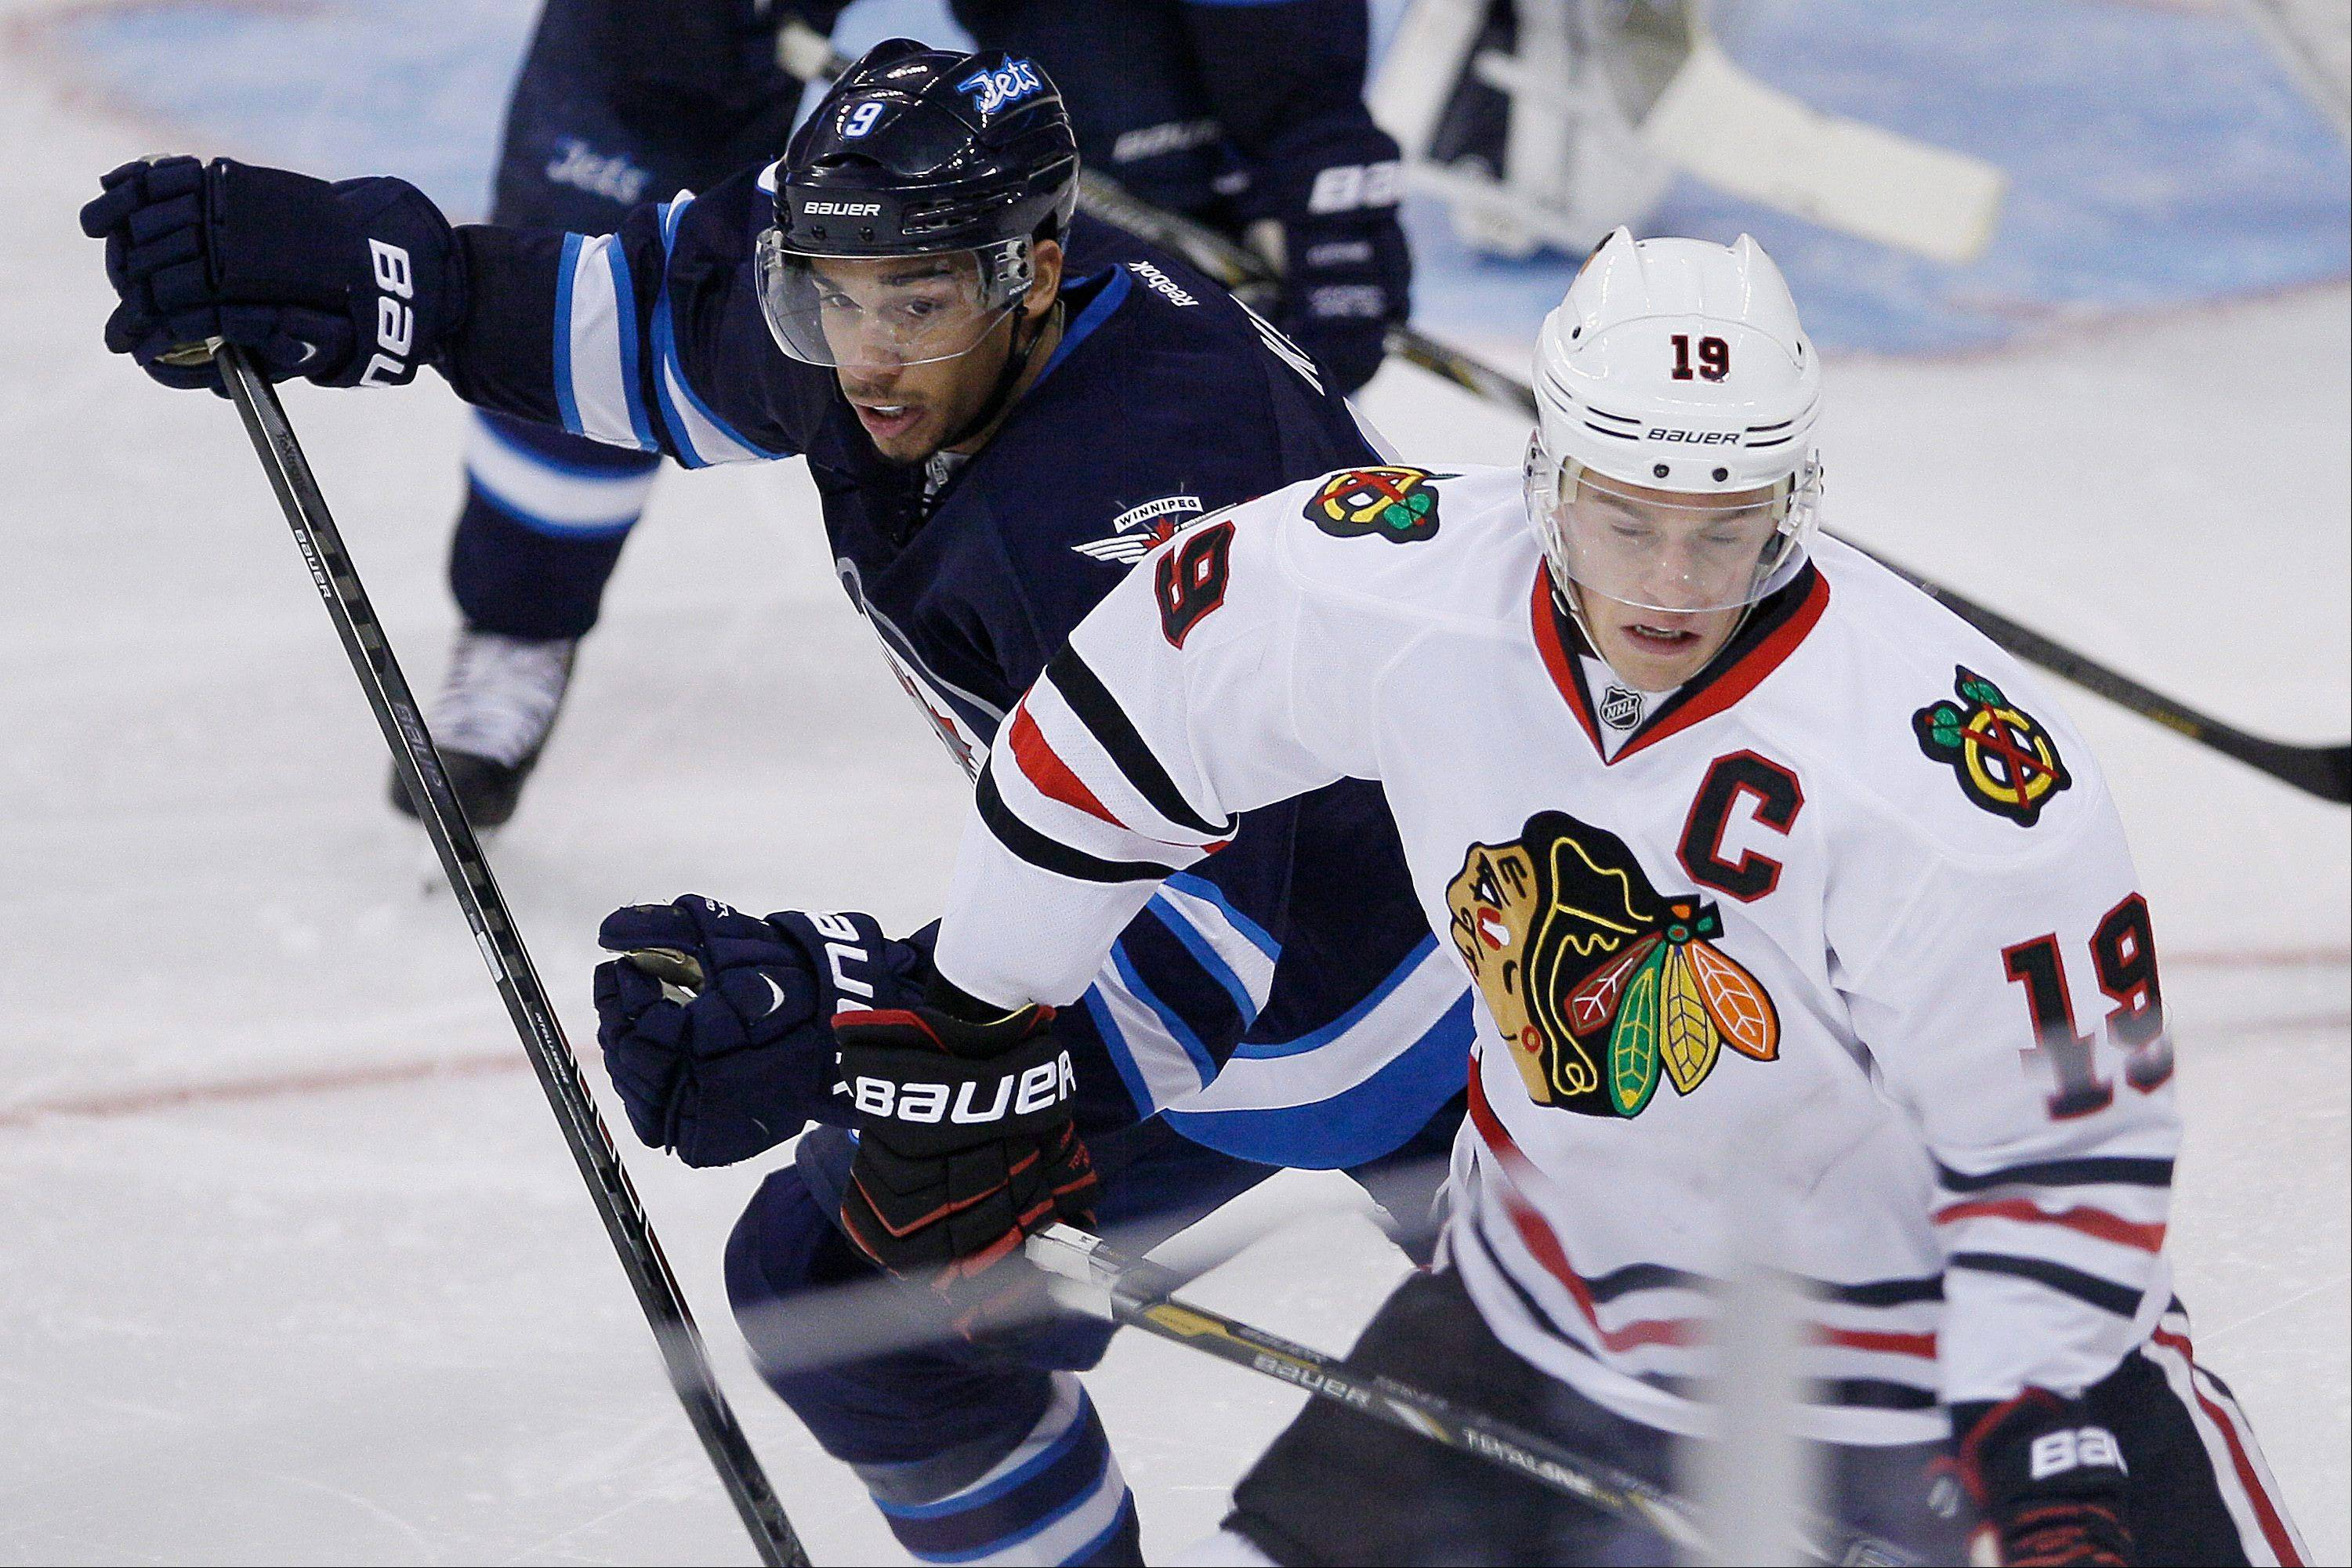 Winnipeg Jets' Evander Kane (9) and Chicago Blackhawks' Jonathan Toews (19) jostle for position during the third period of an NHL hockey game in Winnipeg, Manitoba, Saturday, Nov. 2, 2013. Chicago won 5-1.